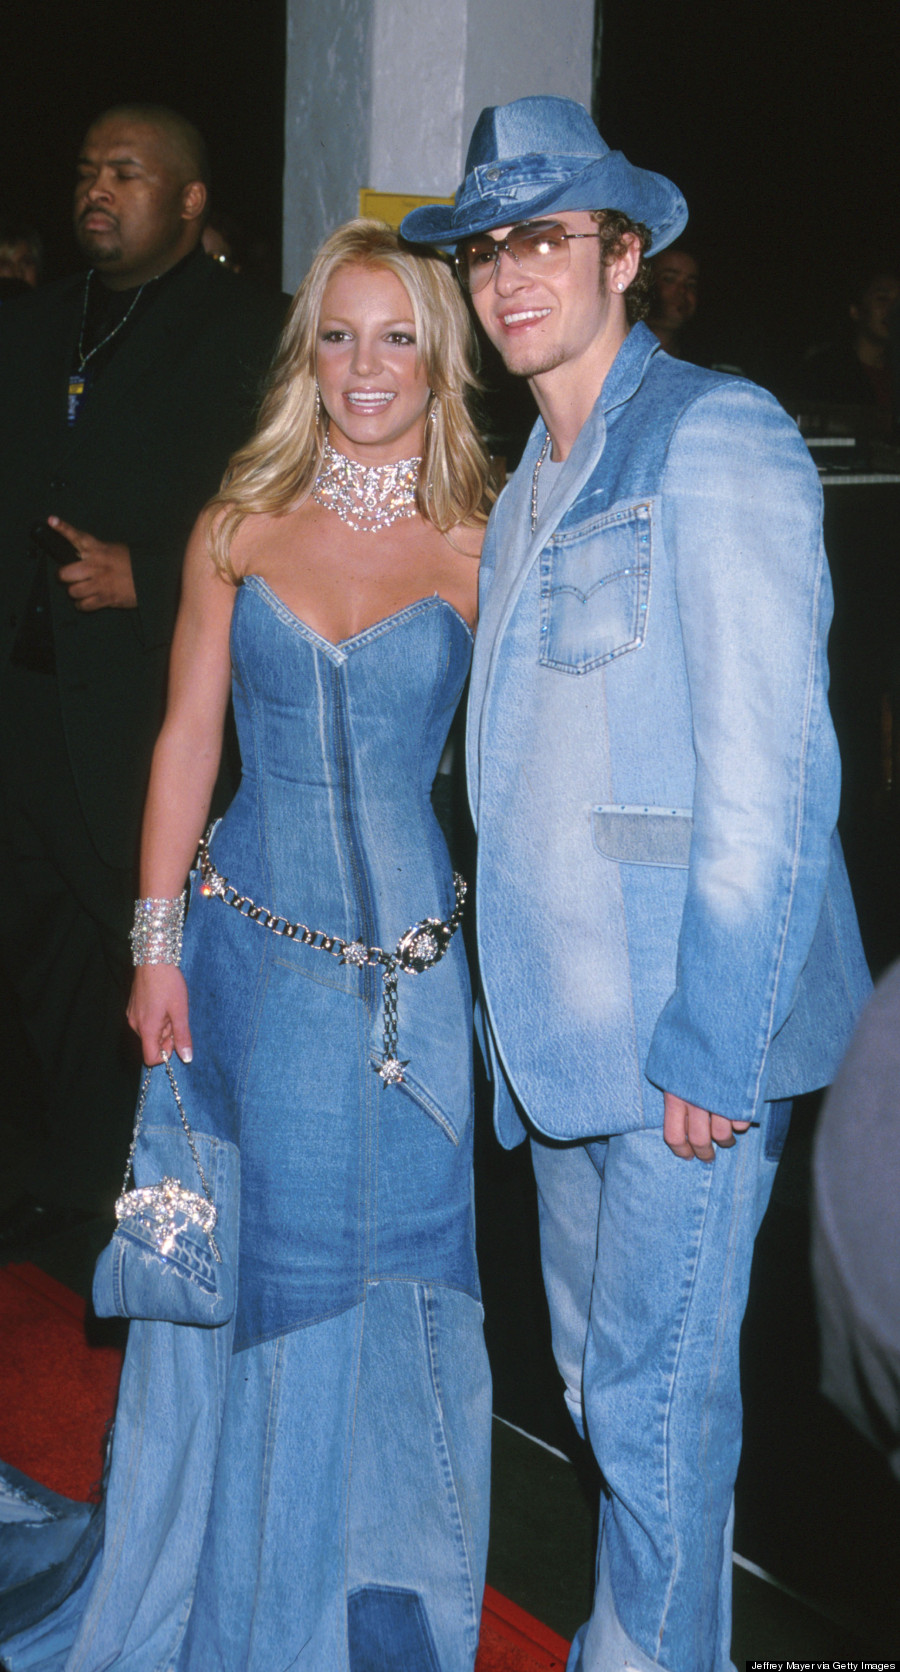 britney spears american music awards 2001